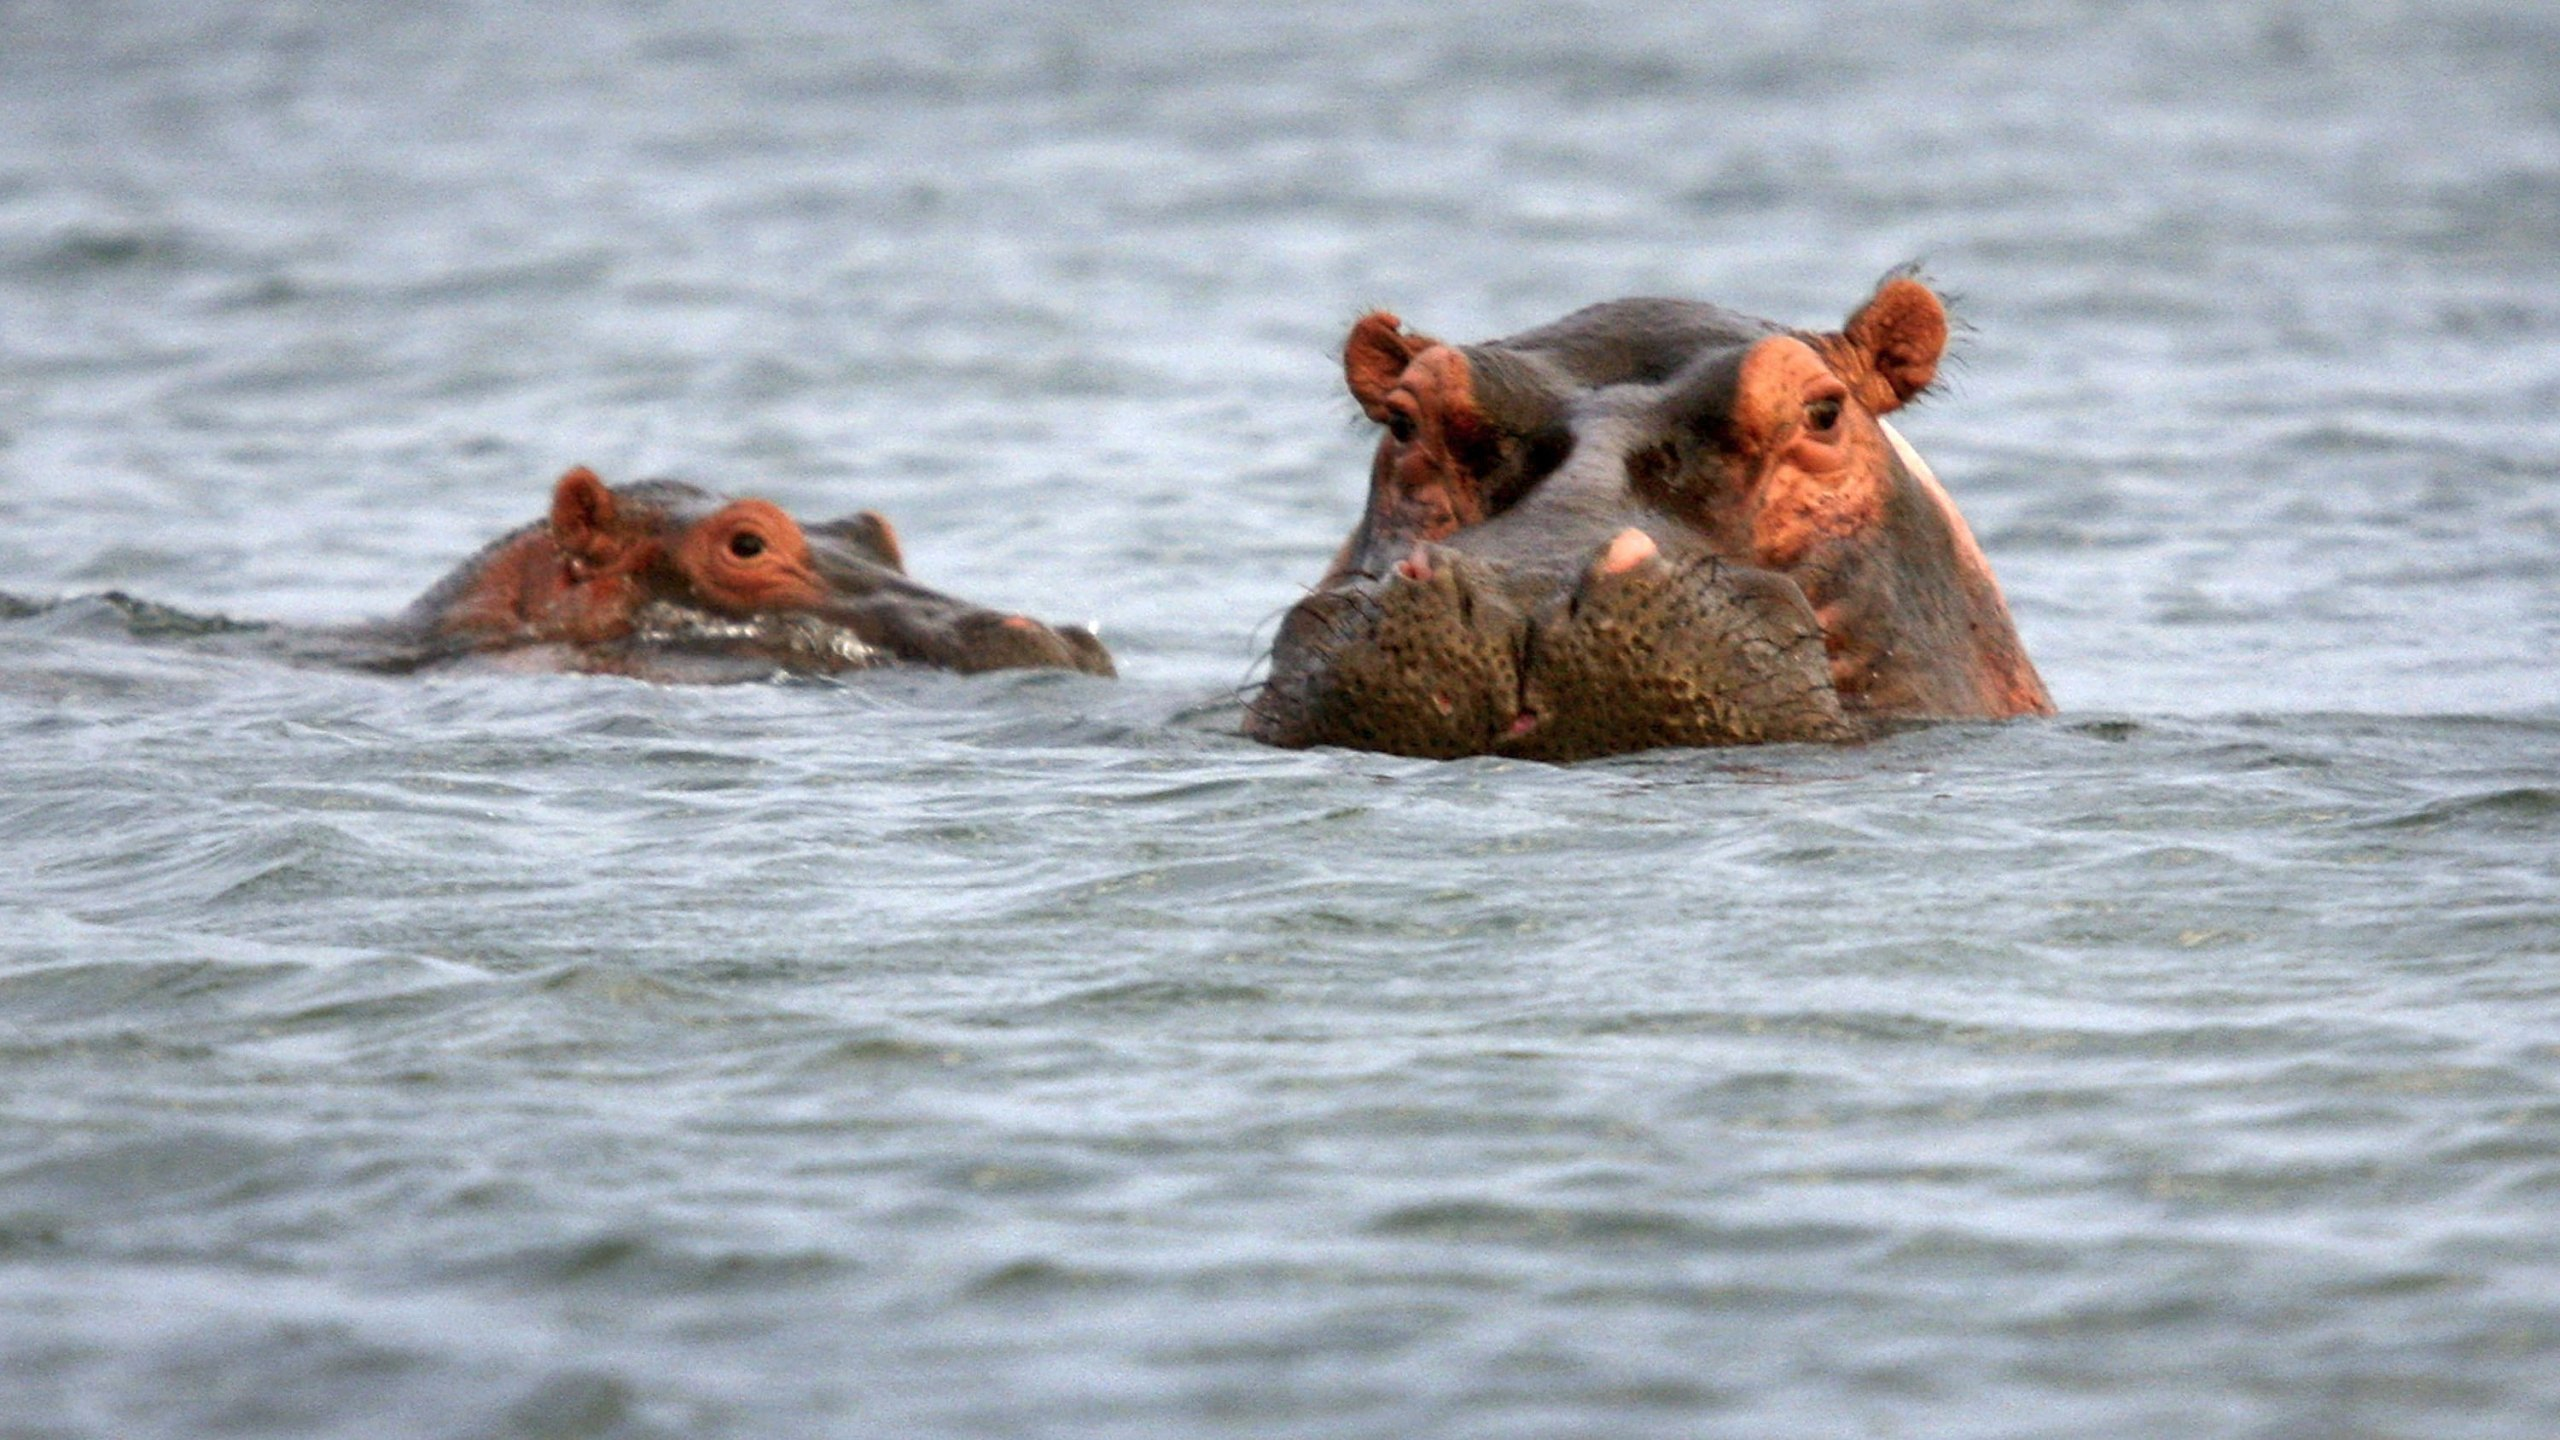 Hippos surface while fishing on Lake Edward July 19, 2006 at Ishango in the Virunga National Park in eastern Democratic Republic of Congo. (Credit: John Moore/Getty Images)